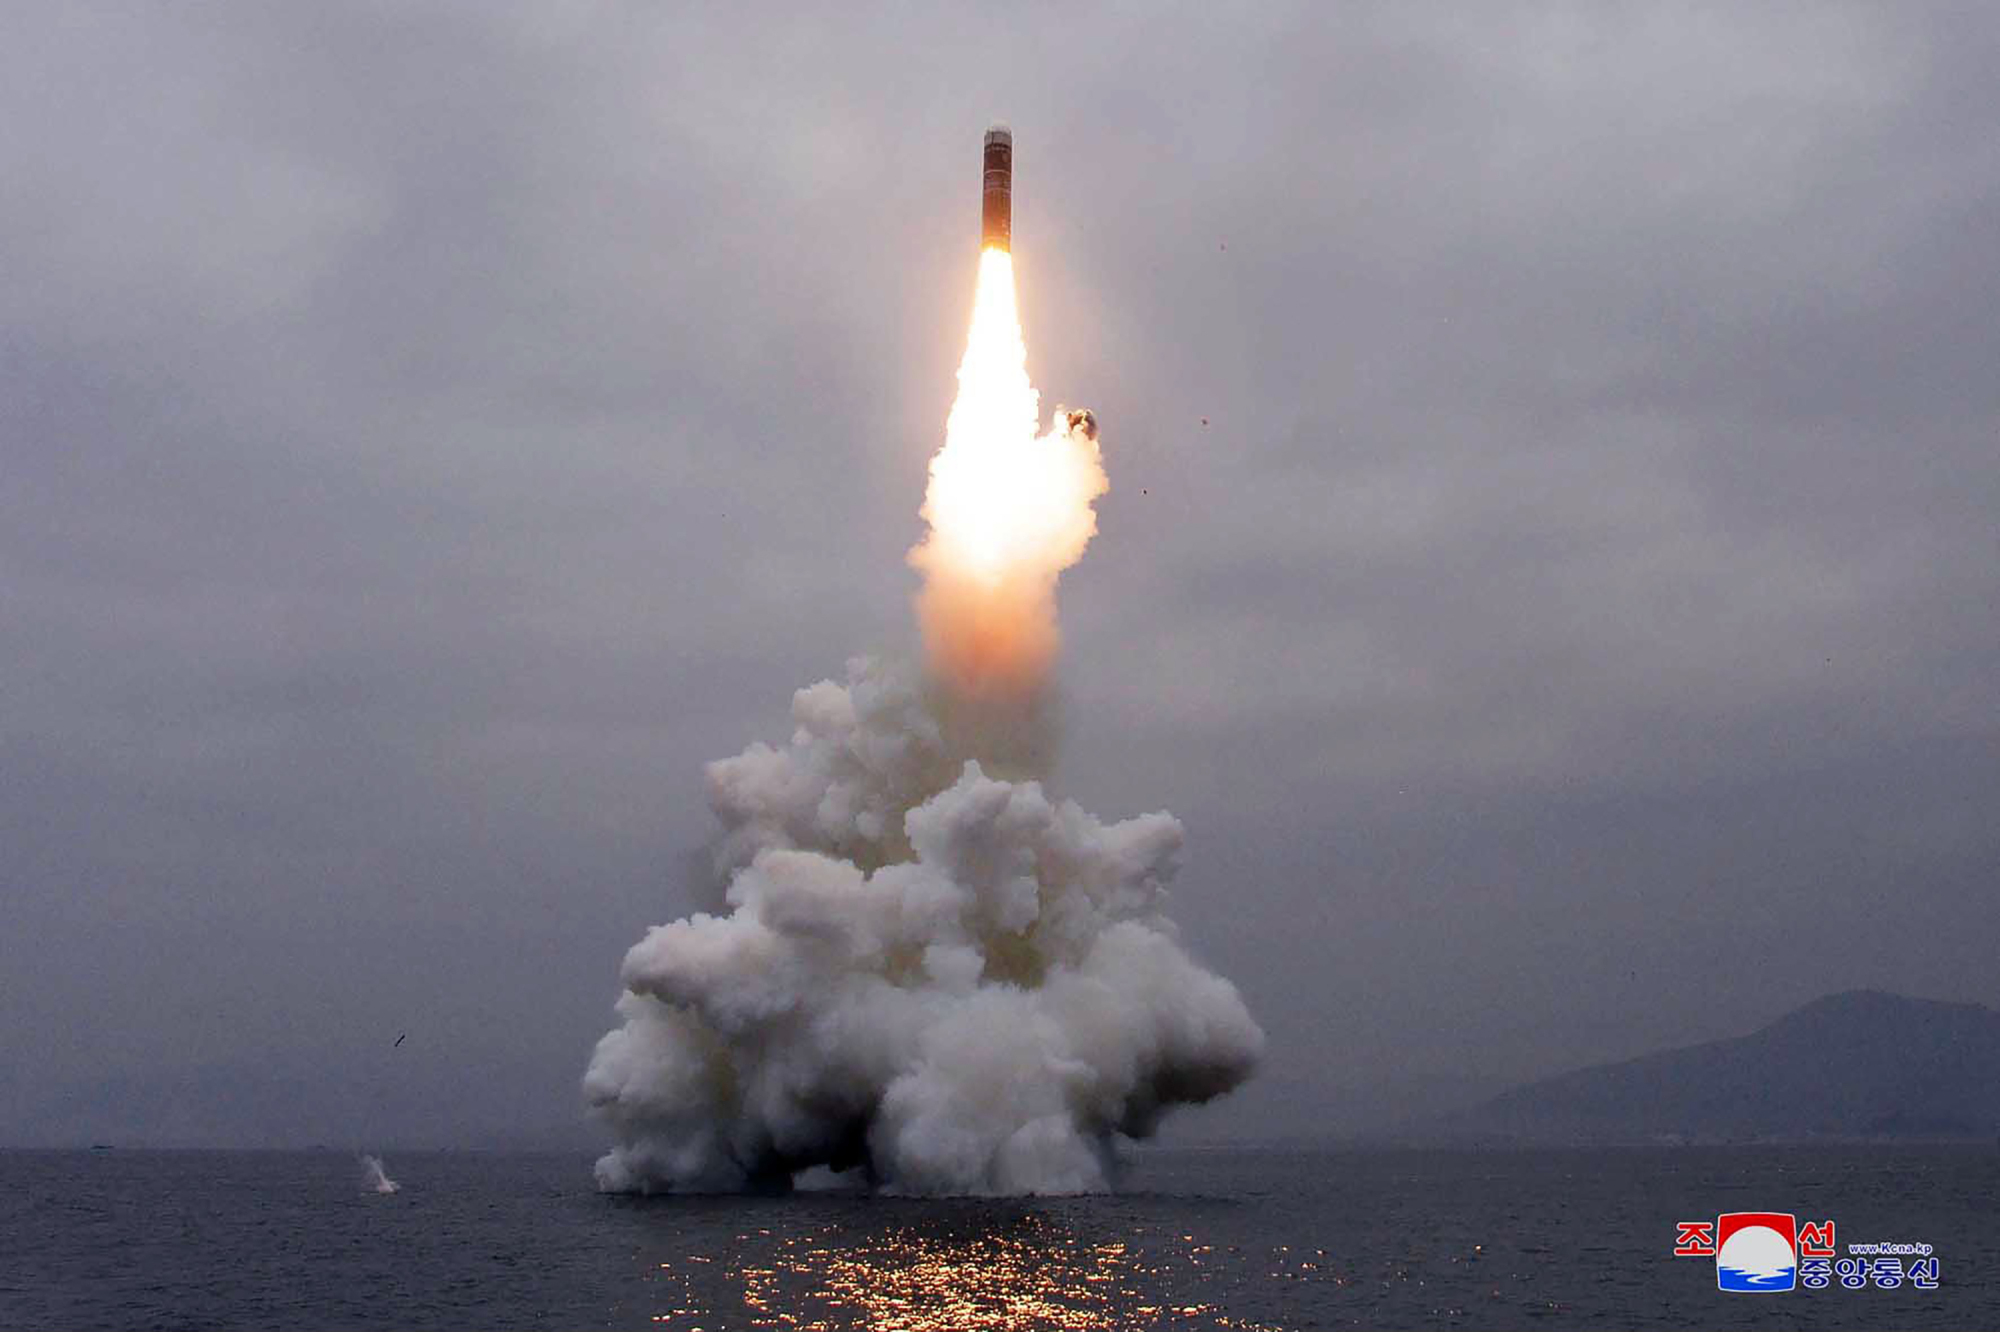 A North Korean missile is launched from underwater off the eastern coastal town of Wonsan on Oct. 2. | KOREAN CENTRAL NEWS AGENCY / VIA KOREA NEWS SERVICE / VIA AP